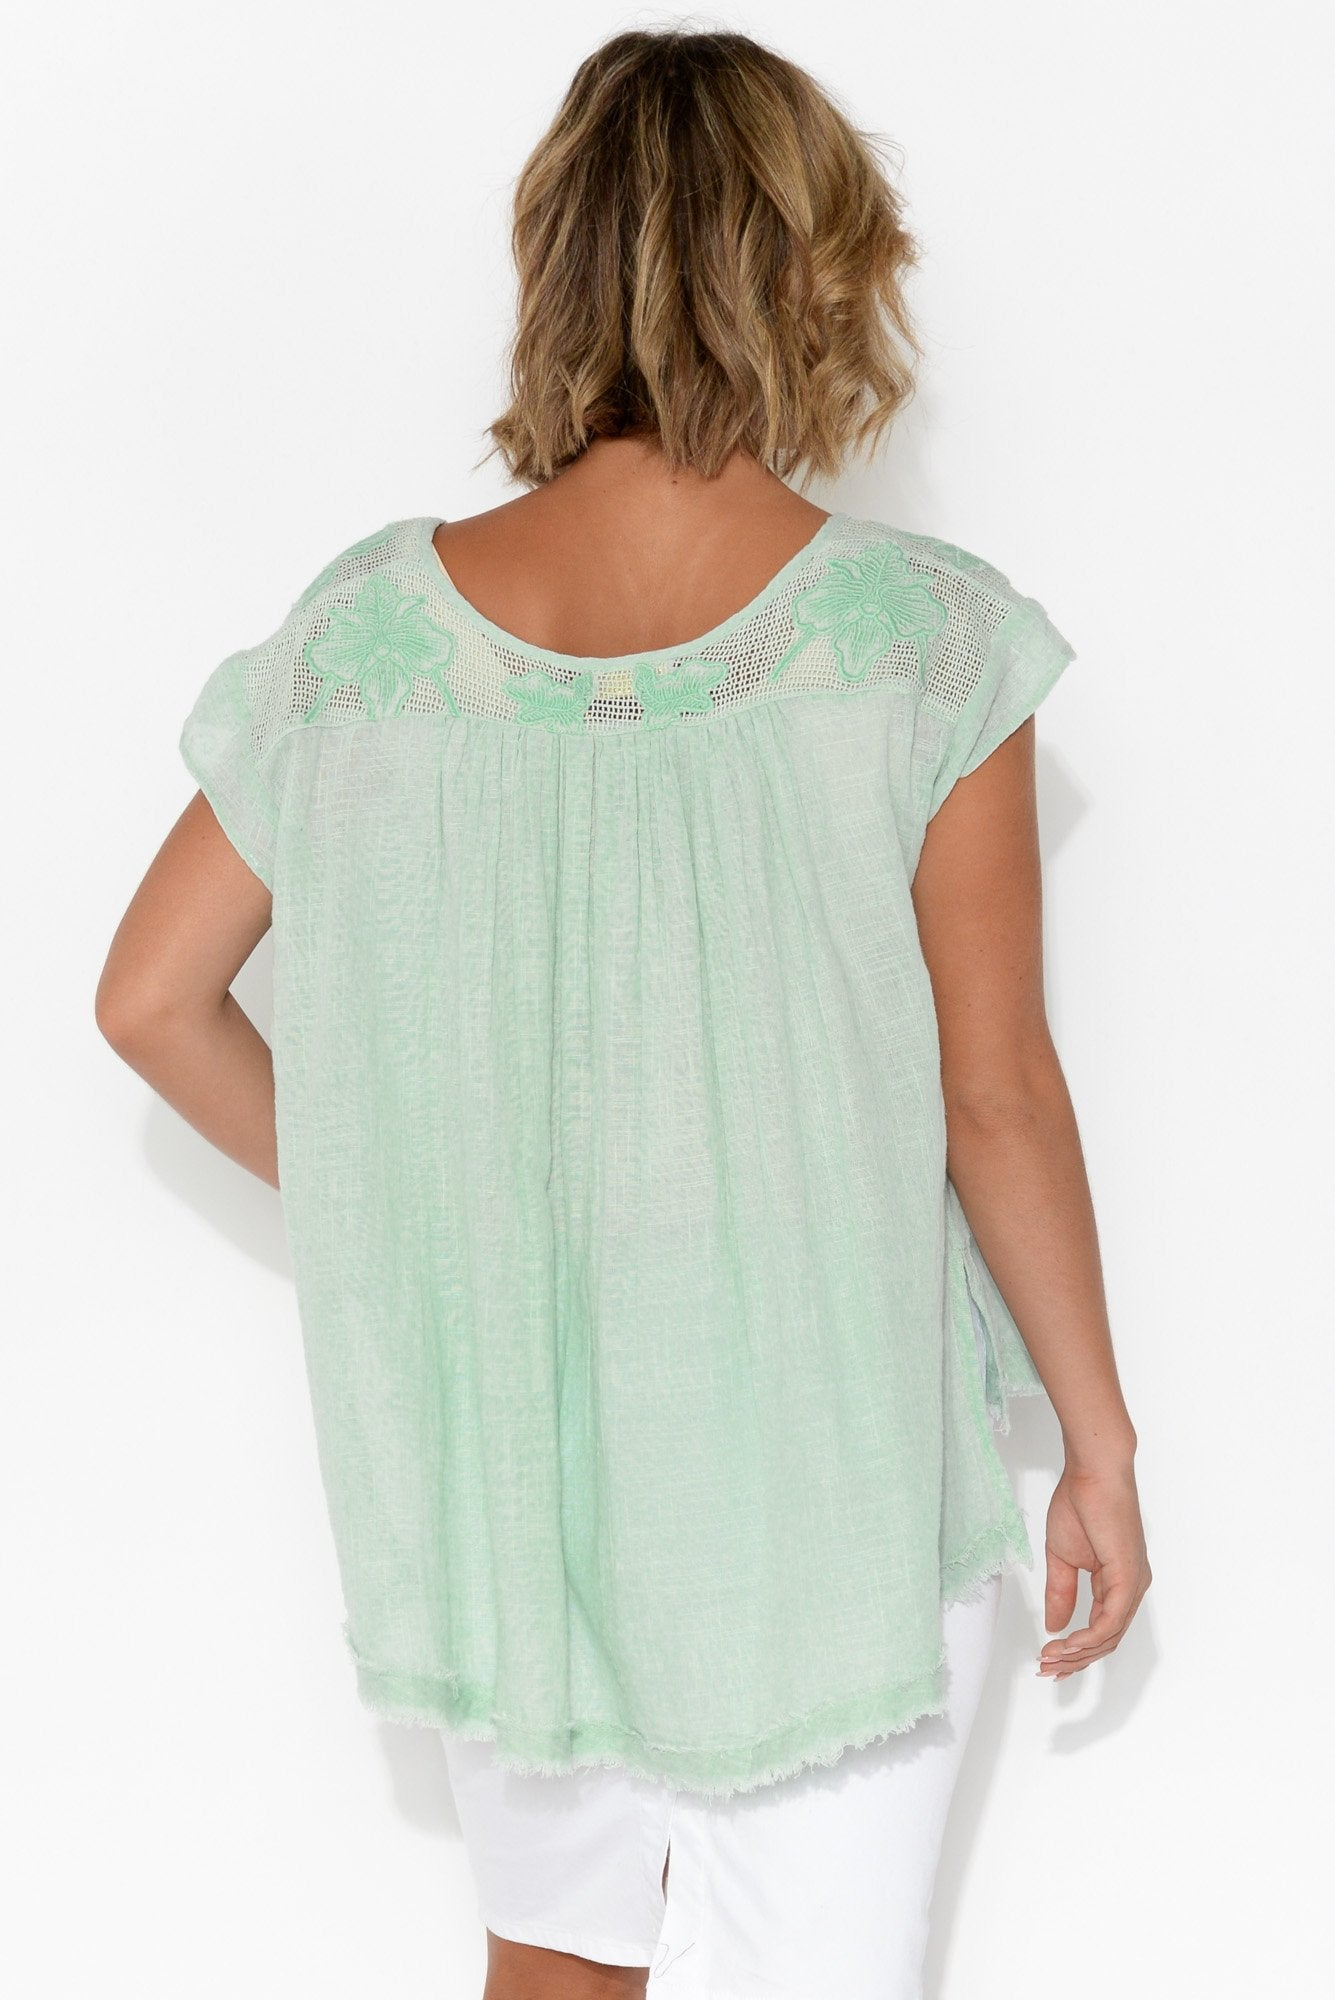 Abbey Aqua Embroidered Cotton Top